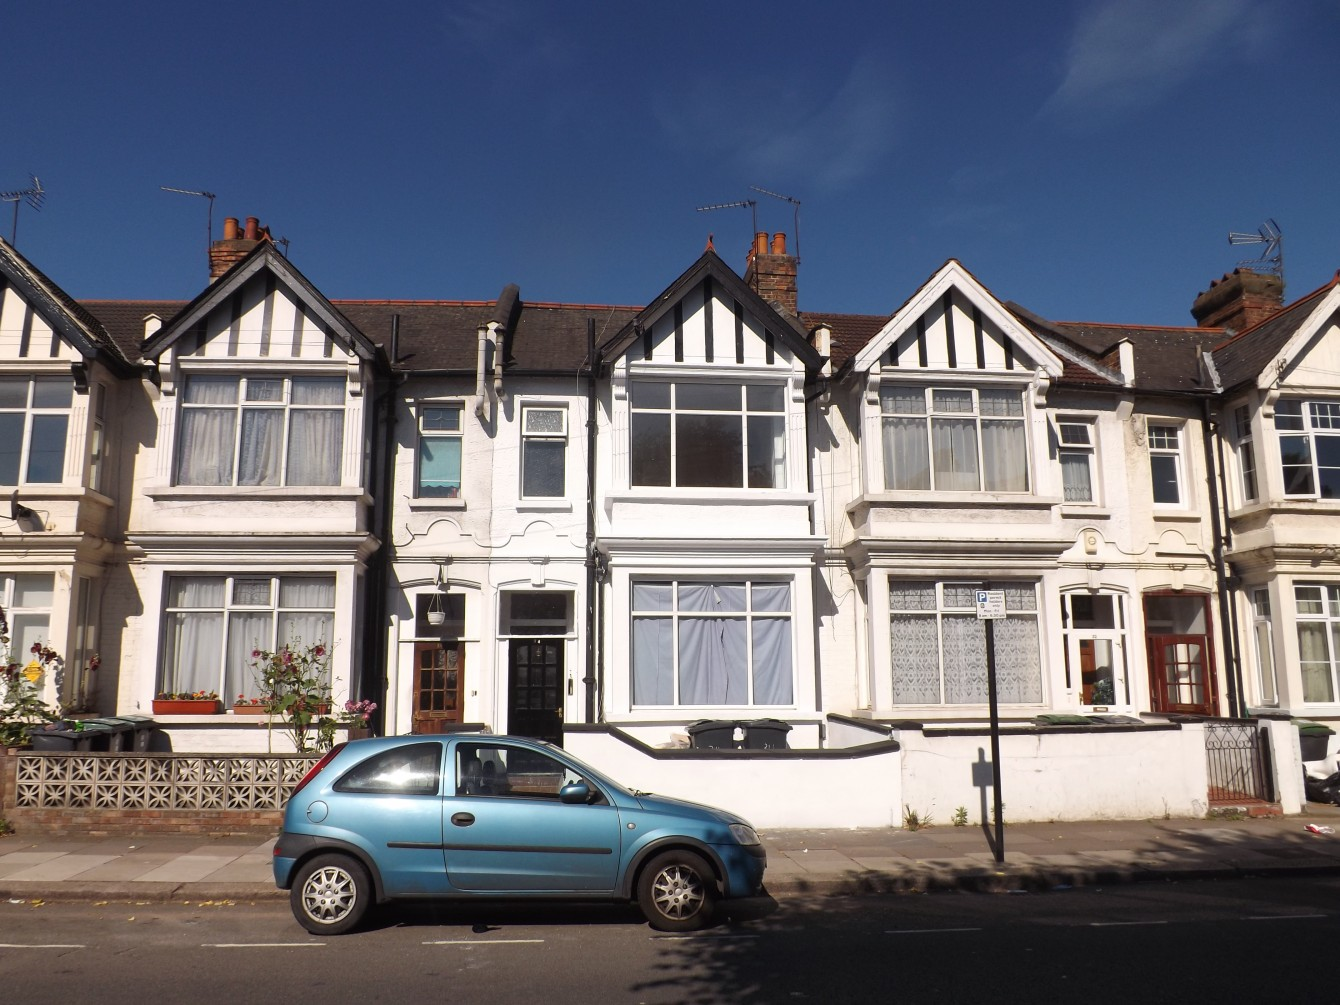 Images for Boreham Road, London EAID:c8d5f0ae42d594d169bca90f3b8b041a BID:1